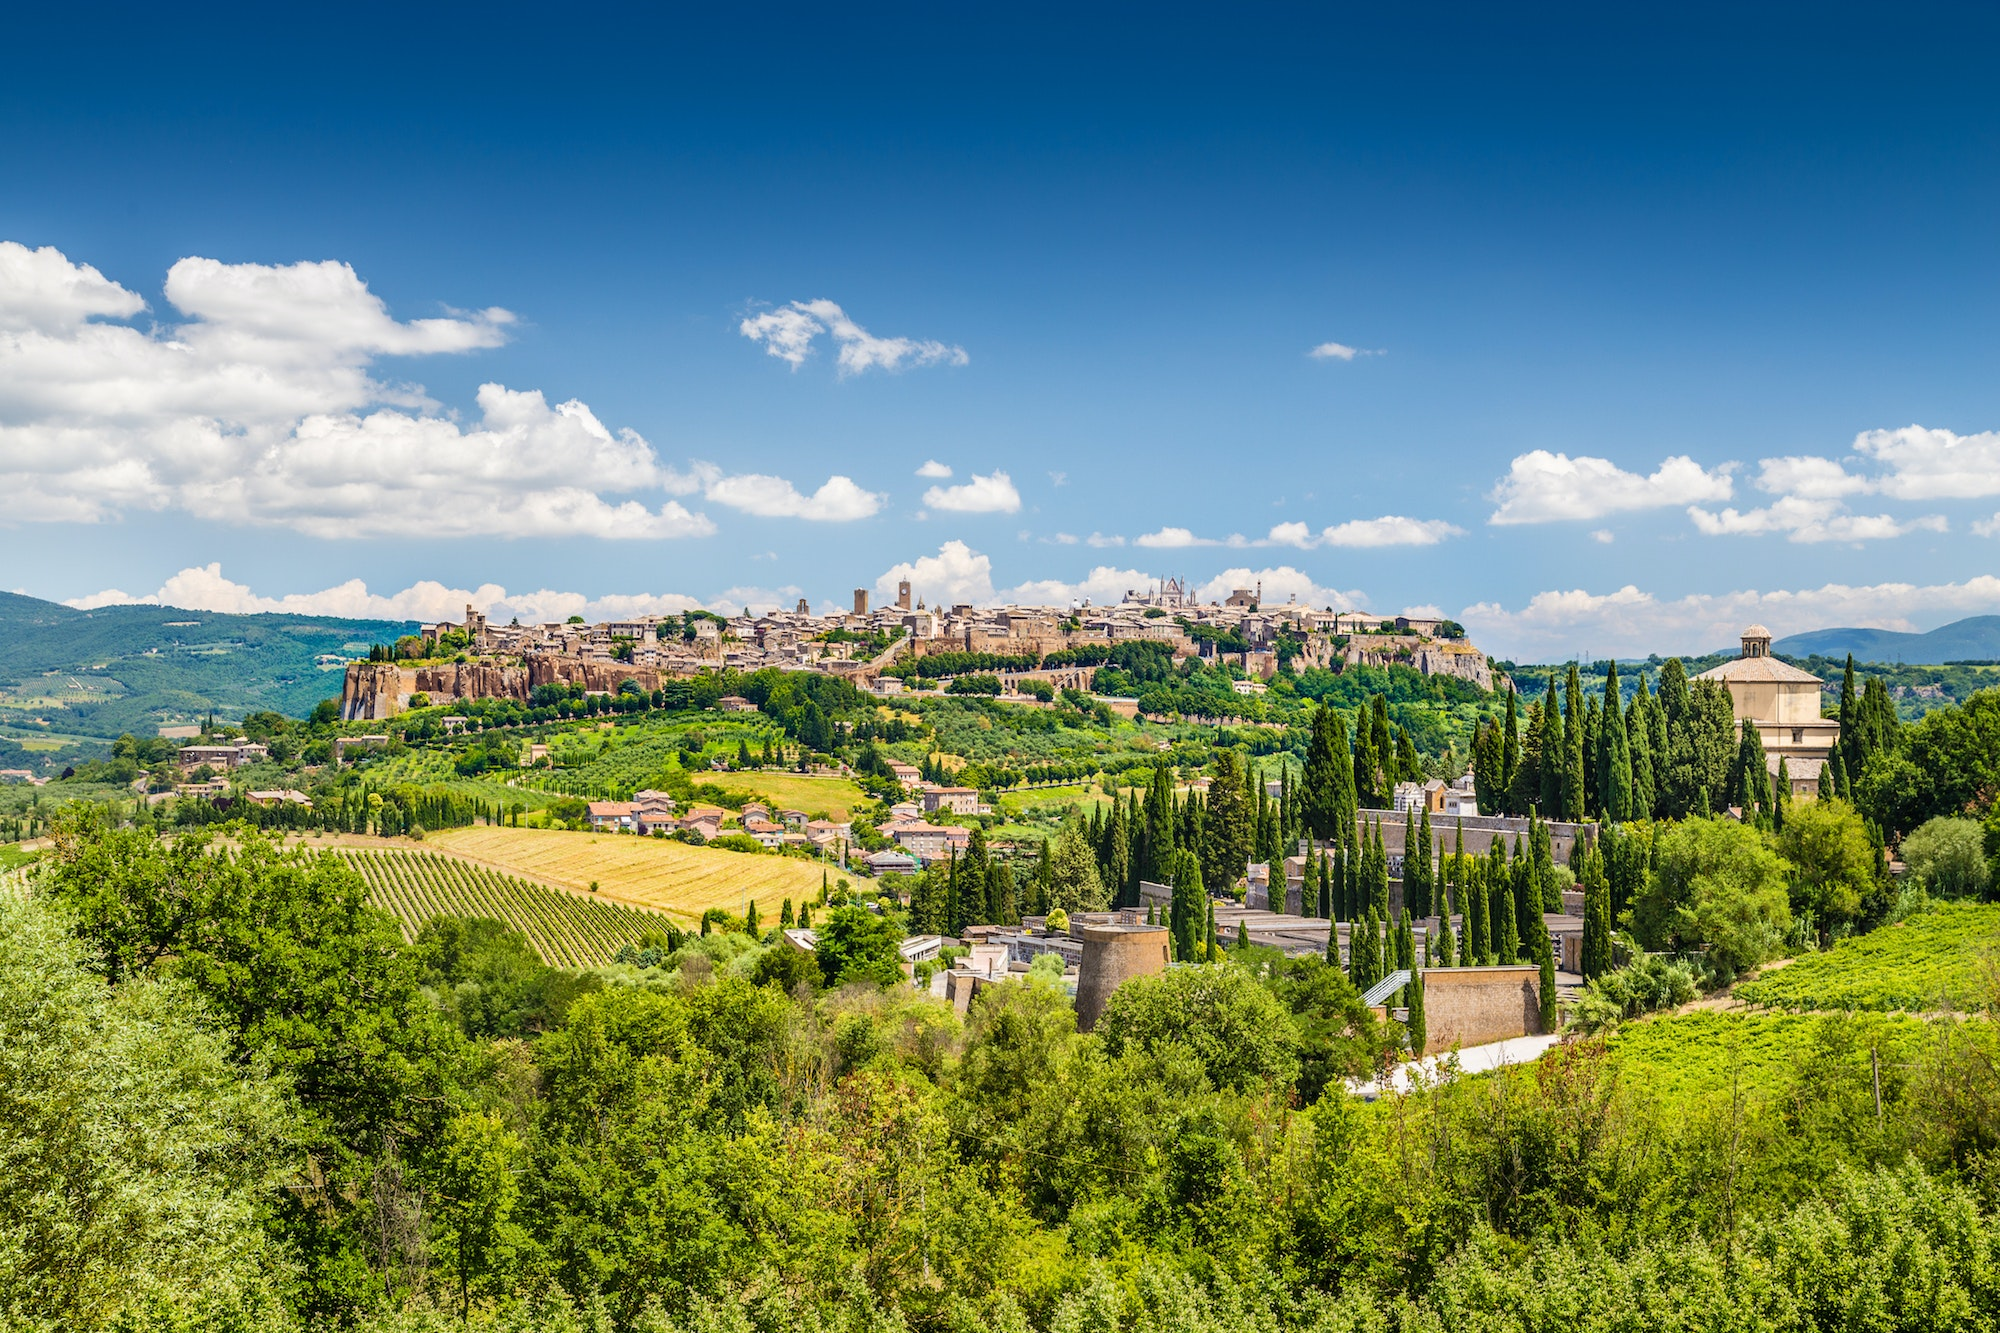 Orvieto is a small city perched on a volcanic stone cliff in Umbria, Italy.